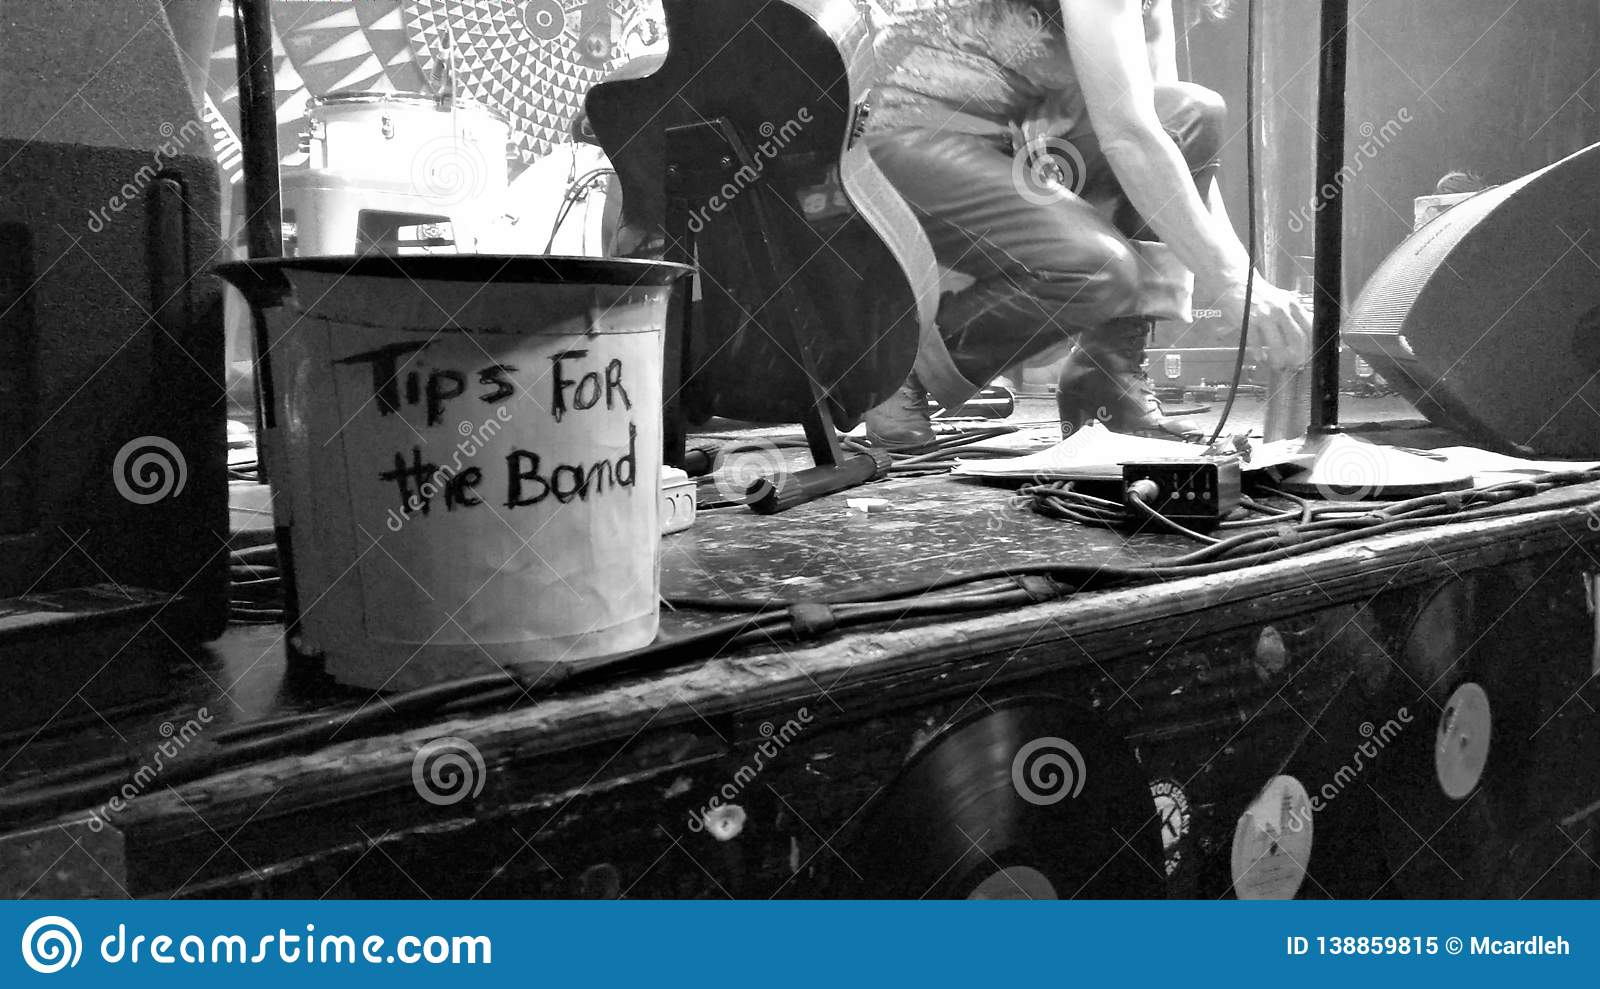 Tips bucket on concert stage